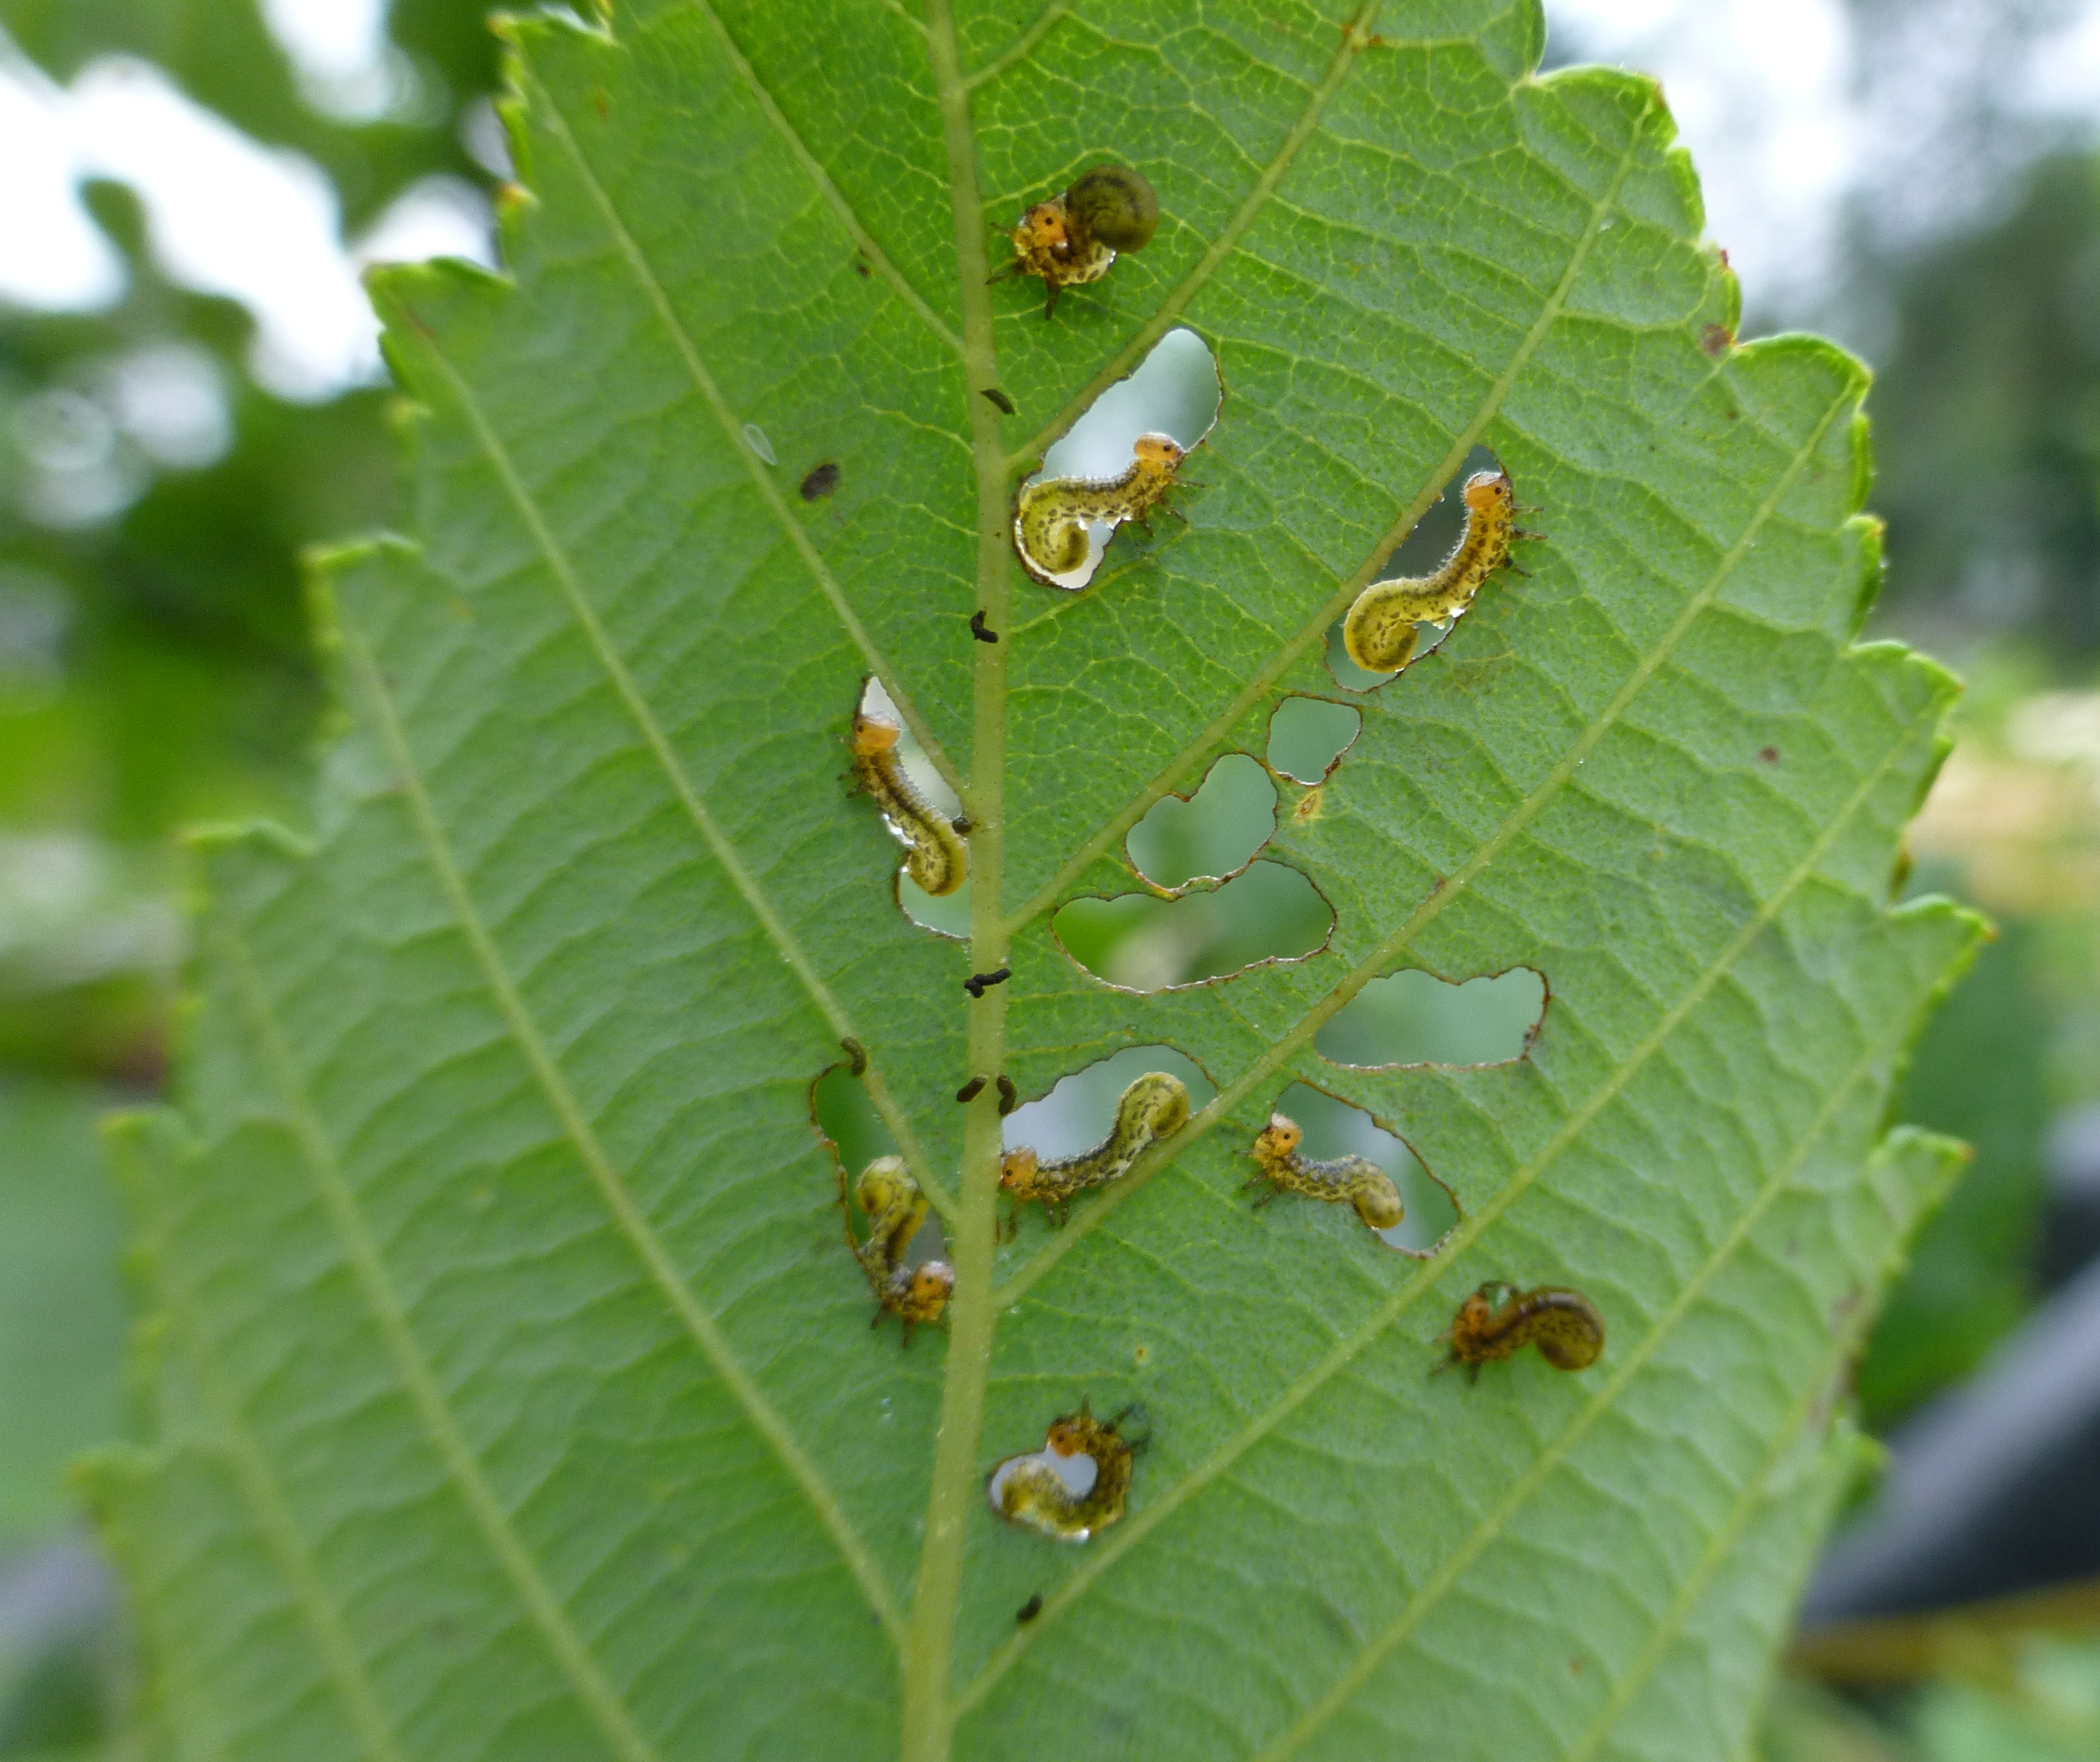 Striped alder sawflies initially create distinct feeding patterns in the leaves